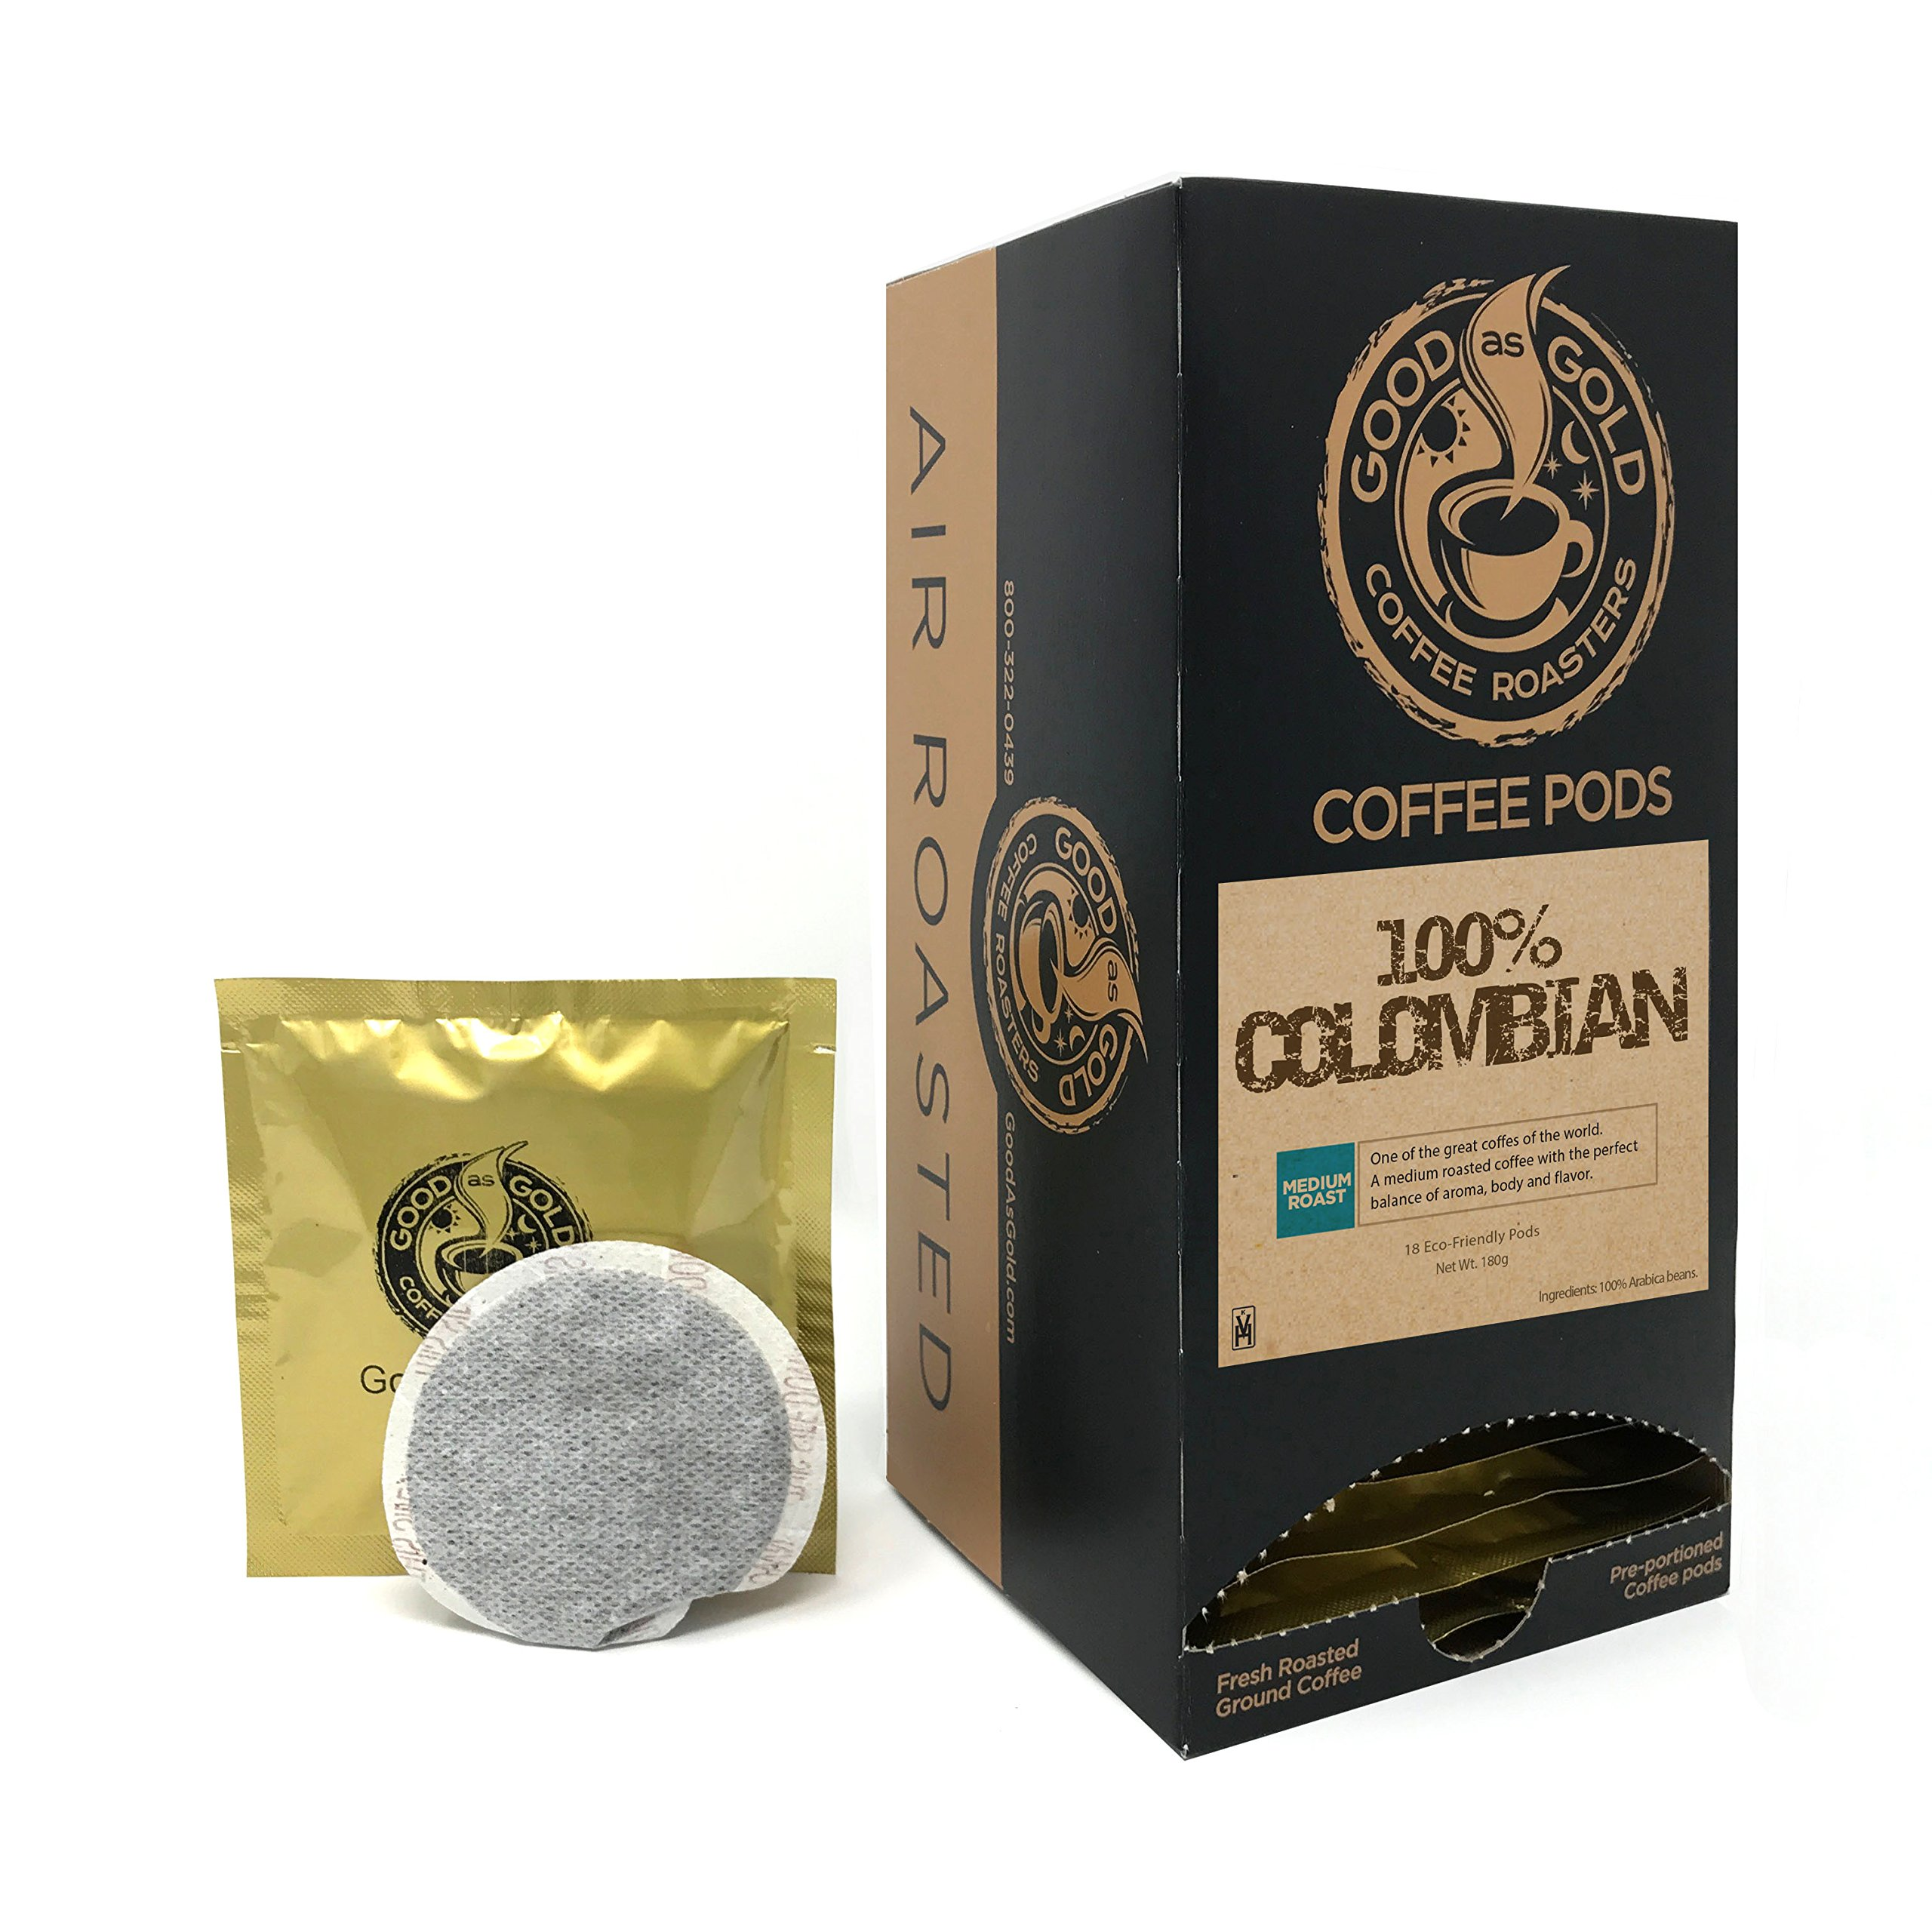 100% COLOMBIAN COFFEE PODS - Good As Gold Coffee - (1 Box/18 Coffee Pods)